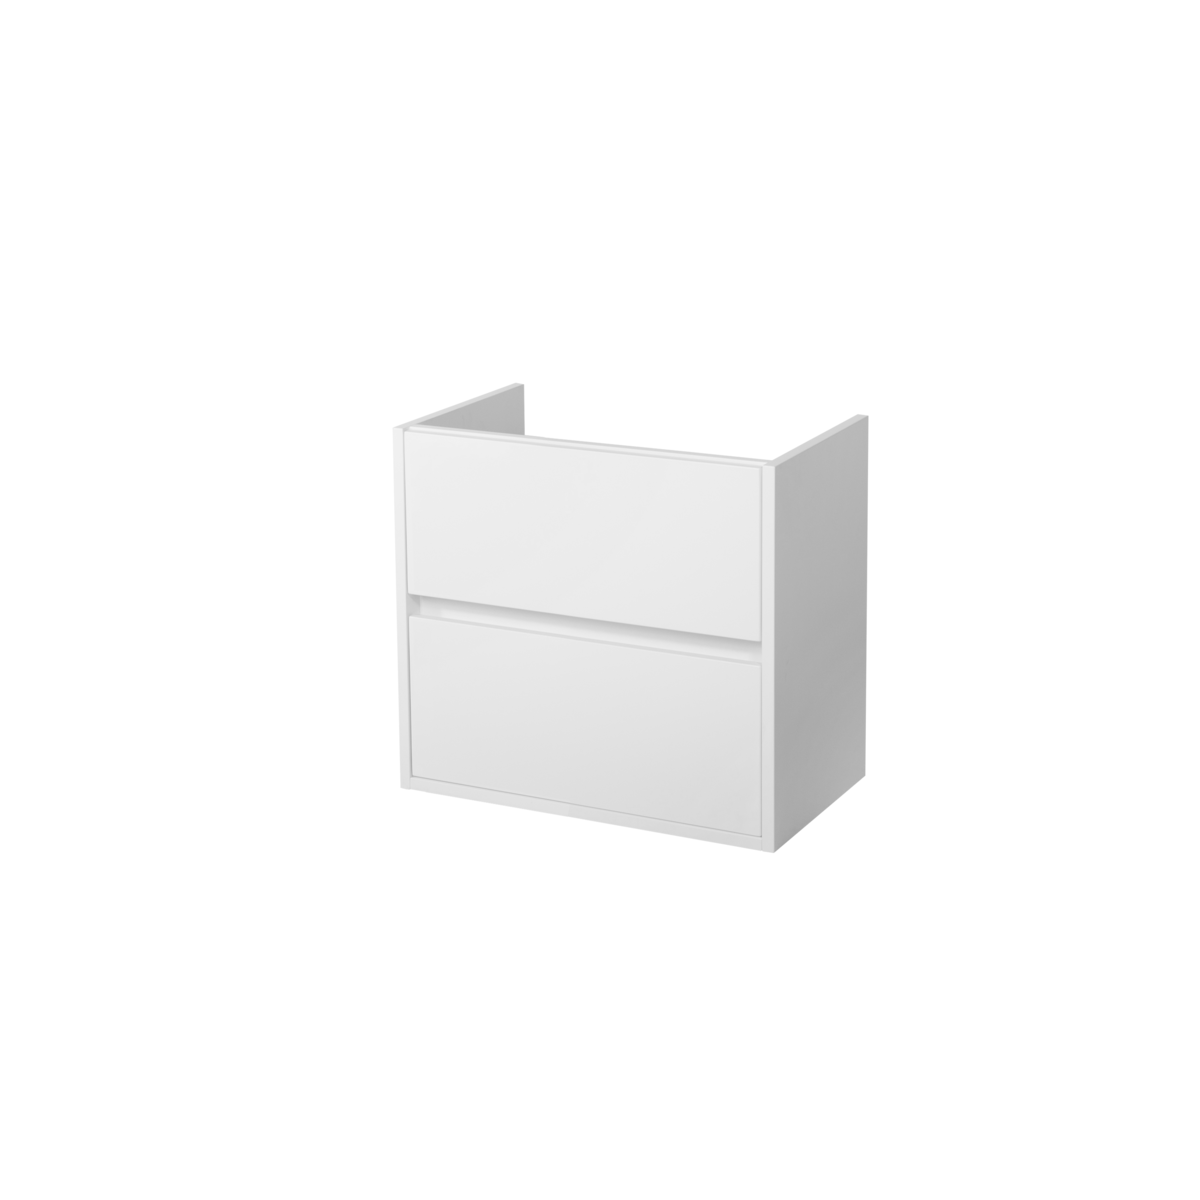 Saniclass nexxt small meuble lavabo 59x55x39cm 2 tiroirs for Meuble sous lavabo blanc laque